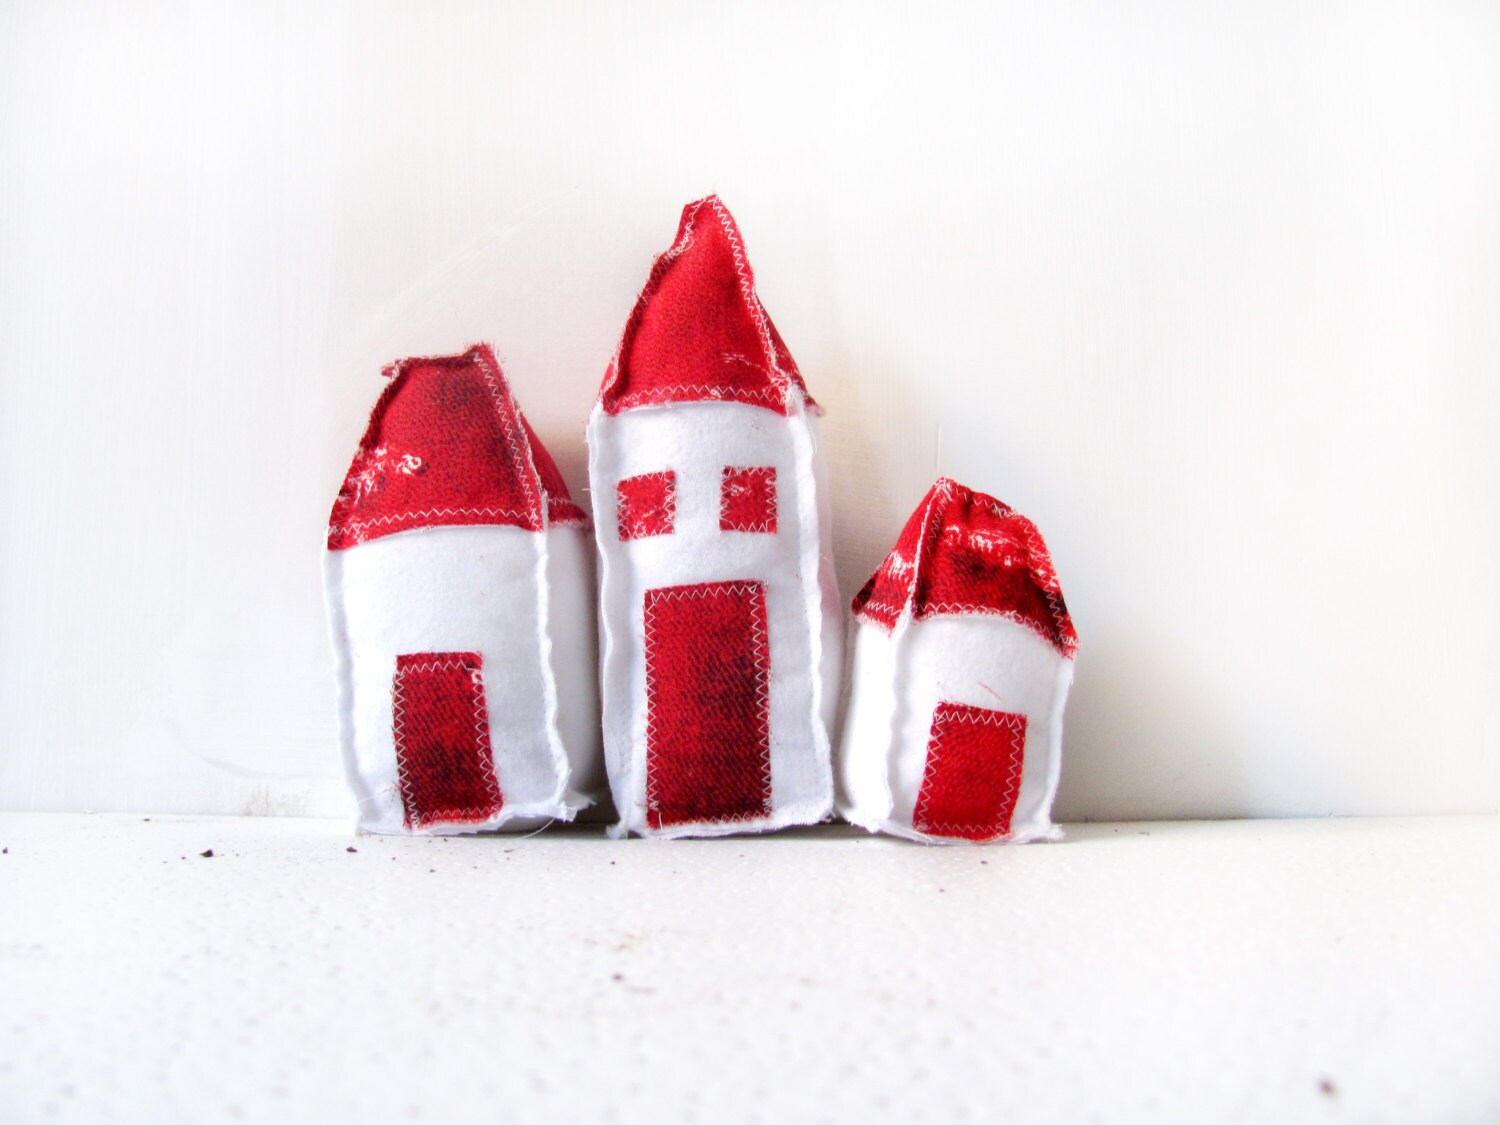 home decor,handmade houses,red and white, valentines day, decoration,small gift, needle felted, handmade houses,valentines day gift, wedding